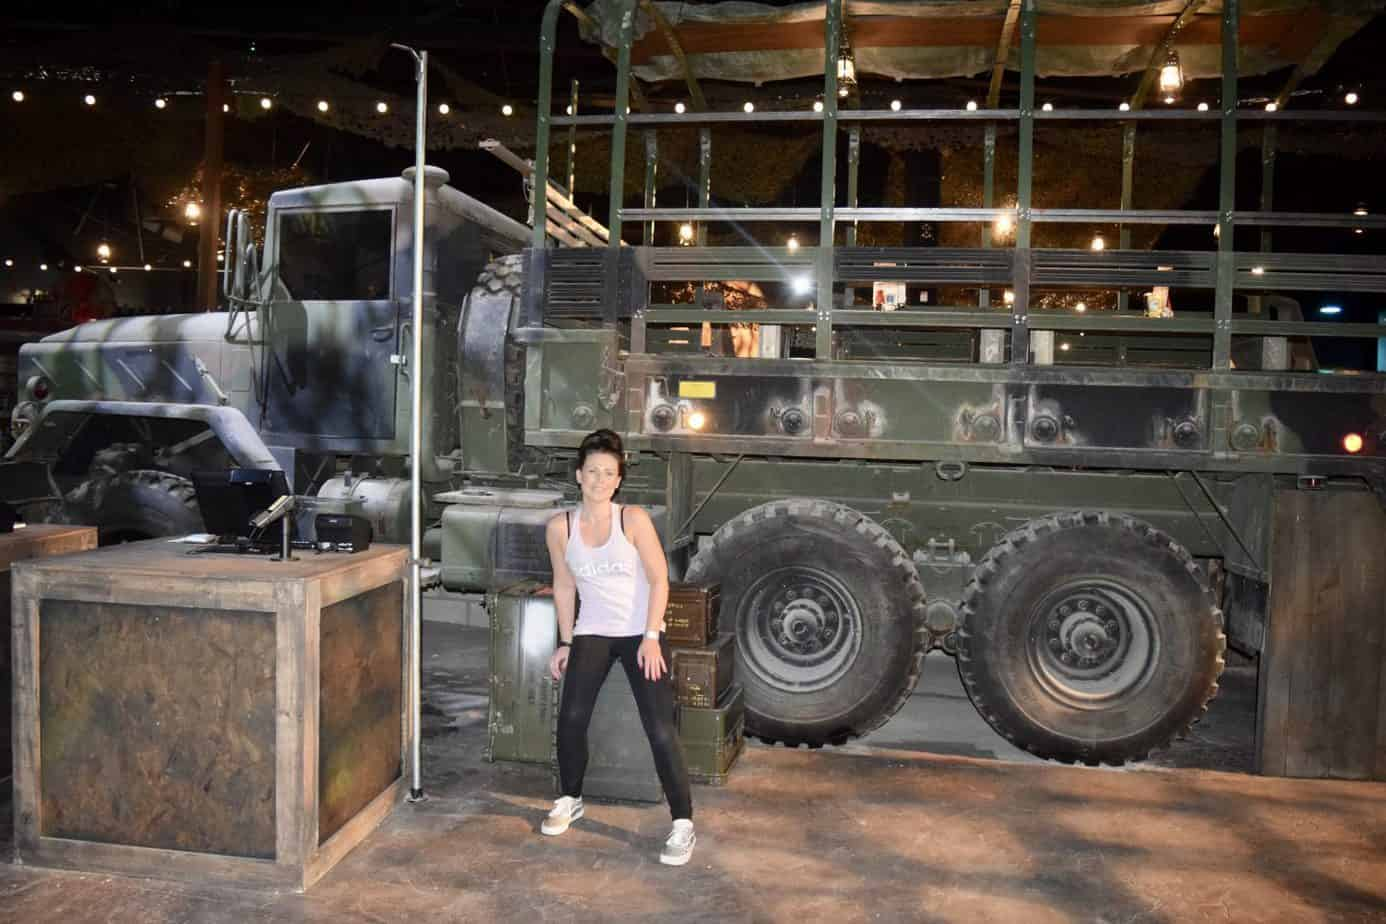 Me outside a huge army truck in the foyer of the bear grylls adventure